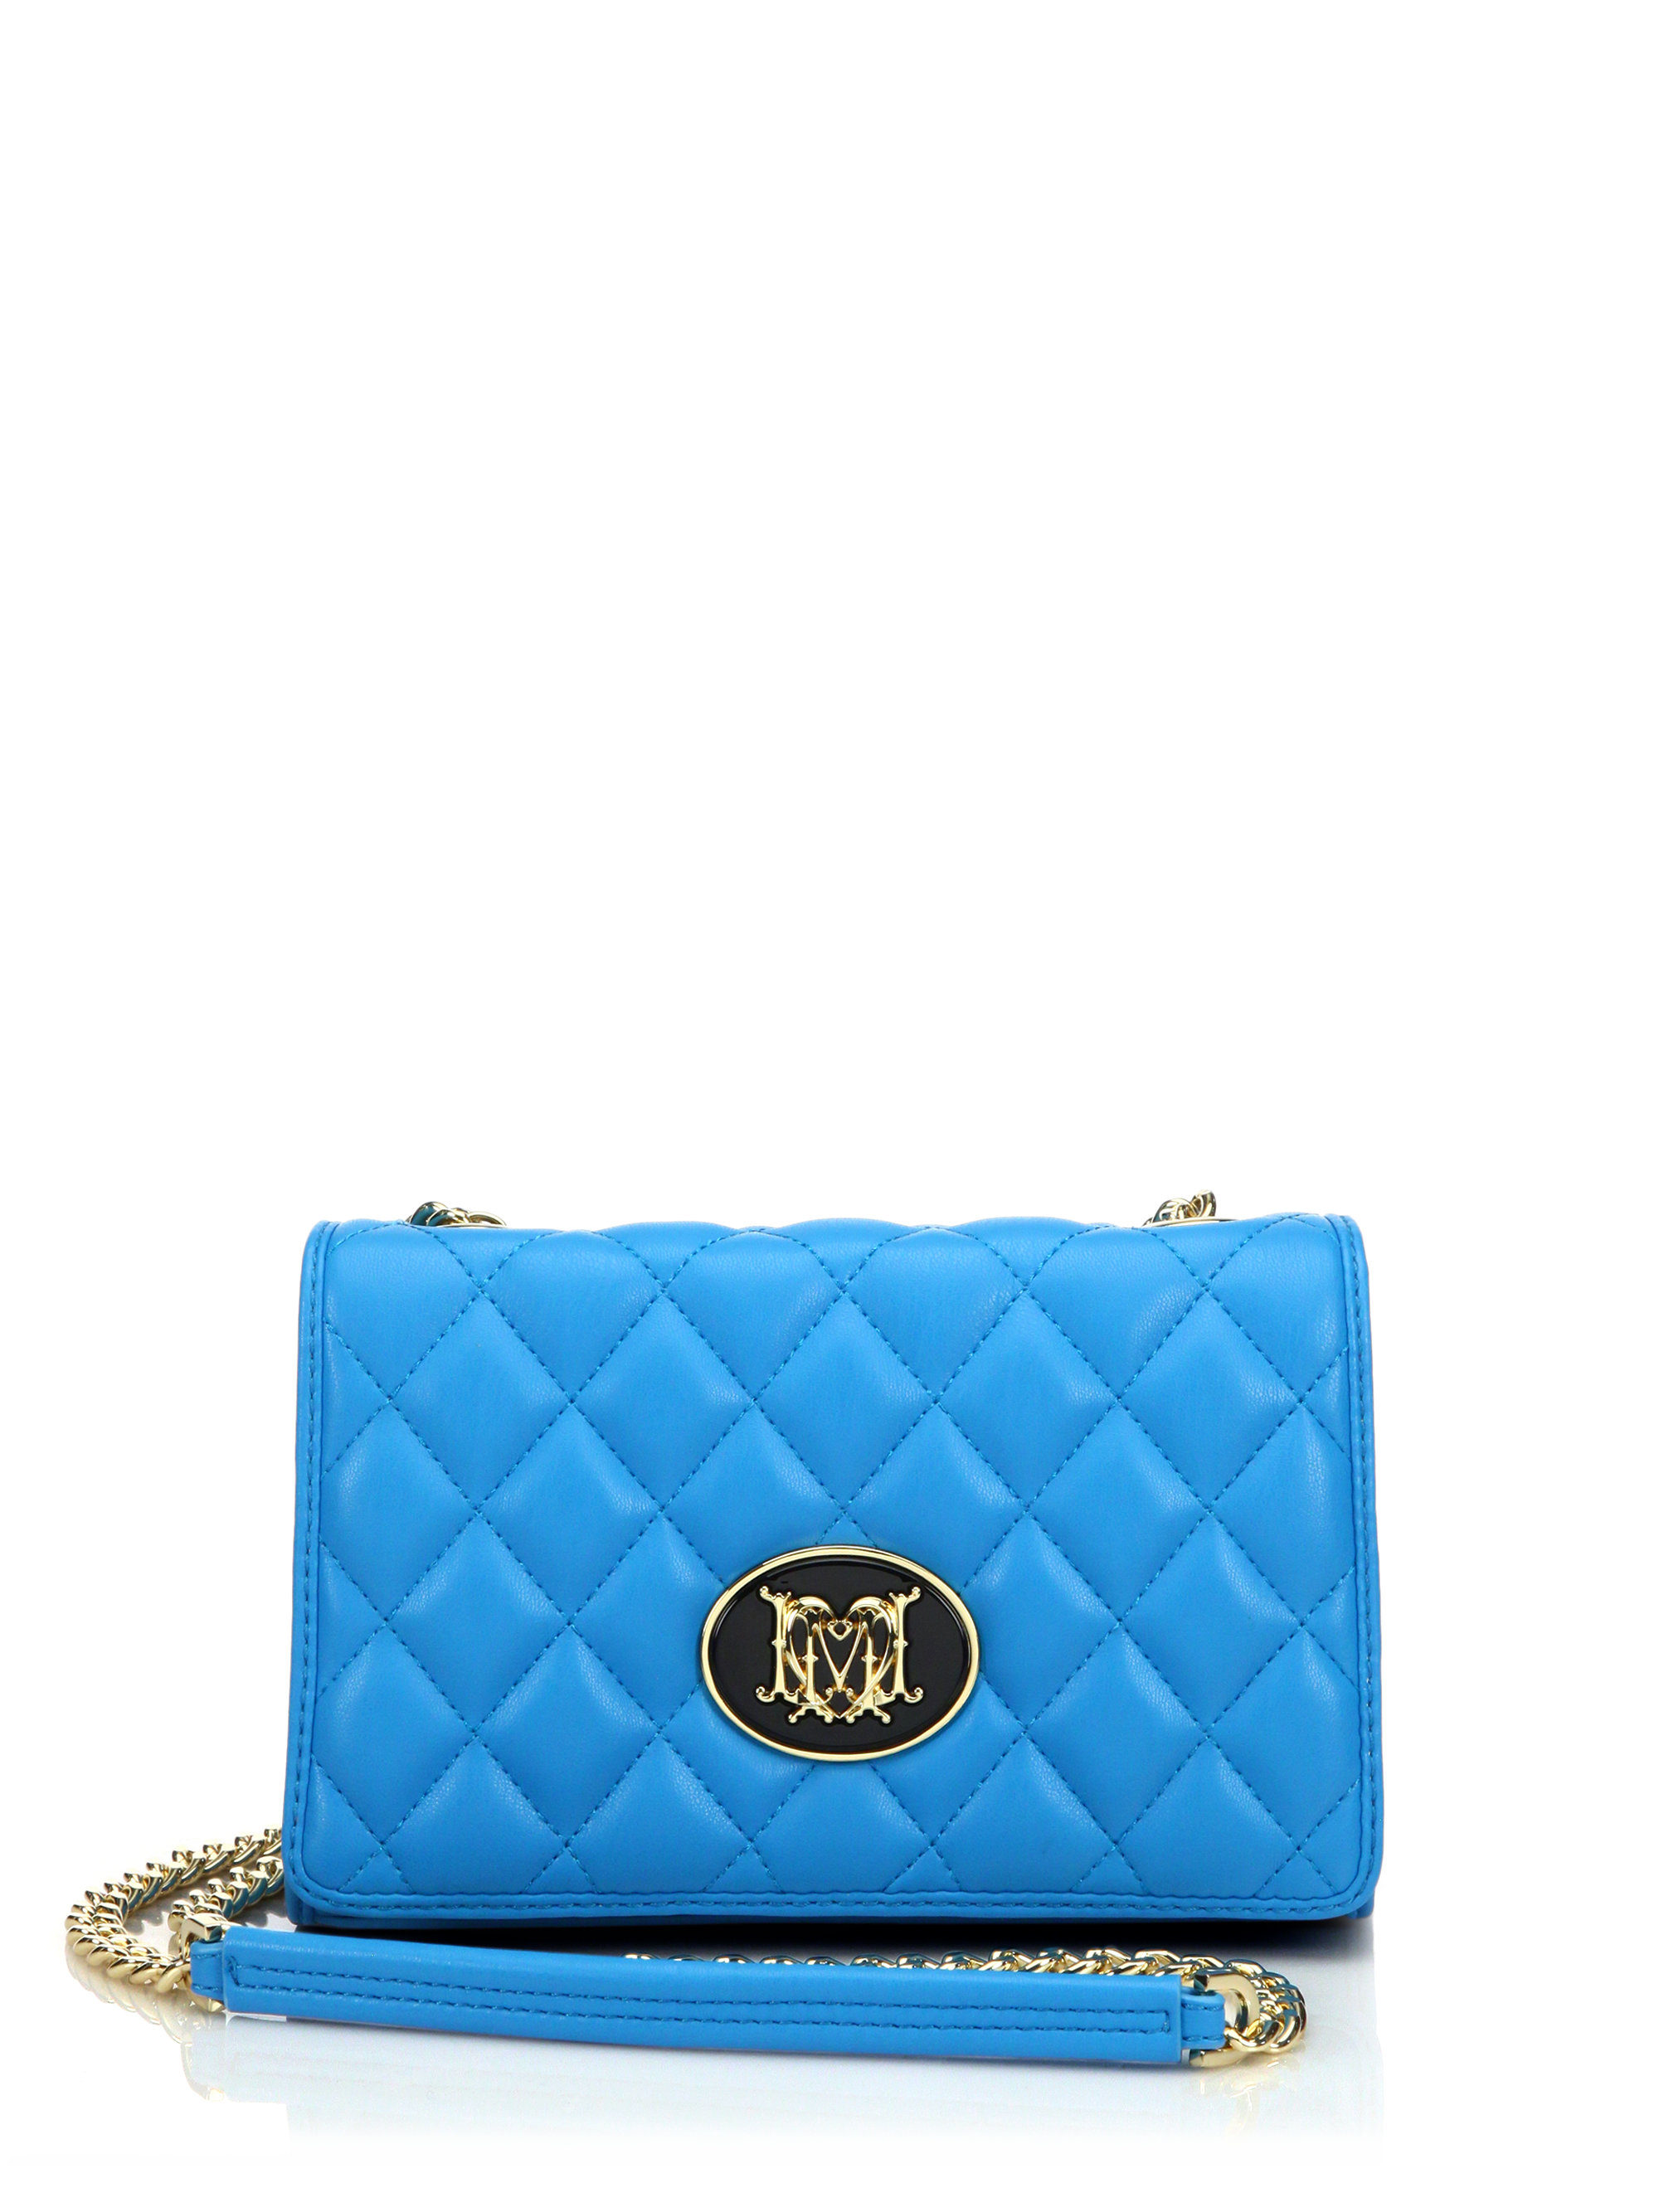 Cheap Pre Order studded crossbody bag - Blue Love Moschino Cheap Sale In China Discount 100% Authentic Wide Range Of Online 8jGX3s